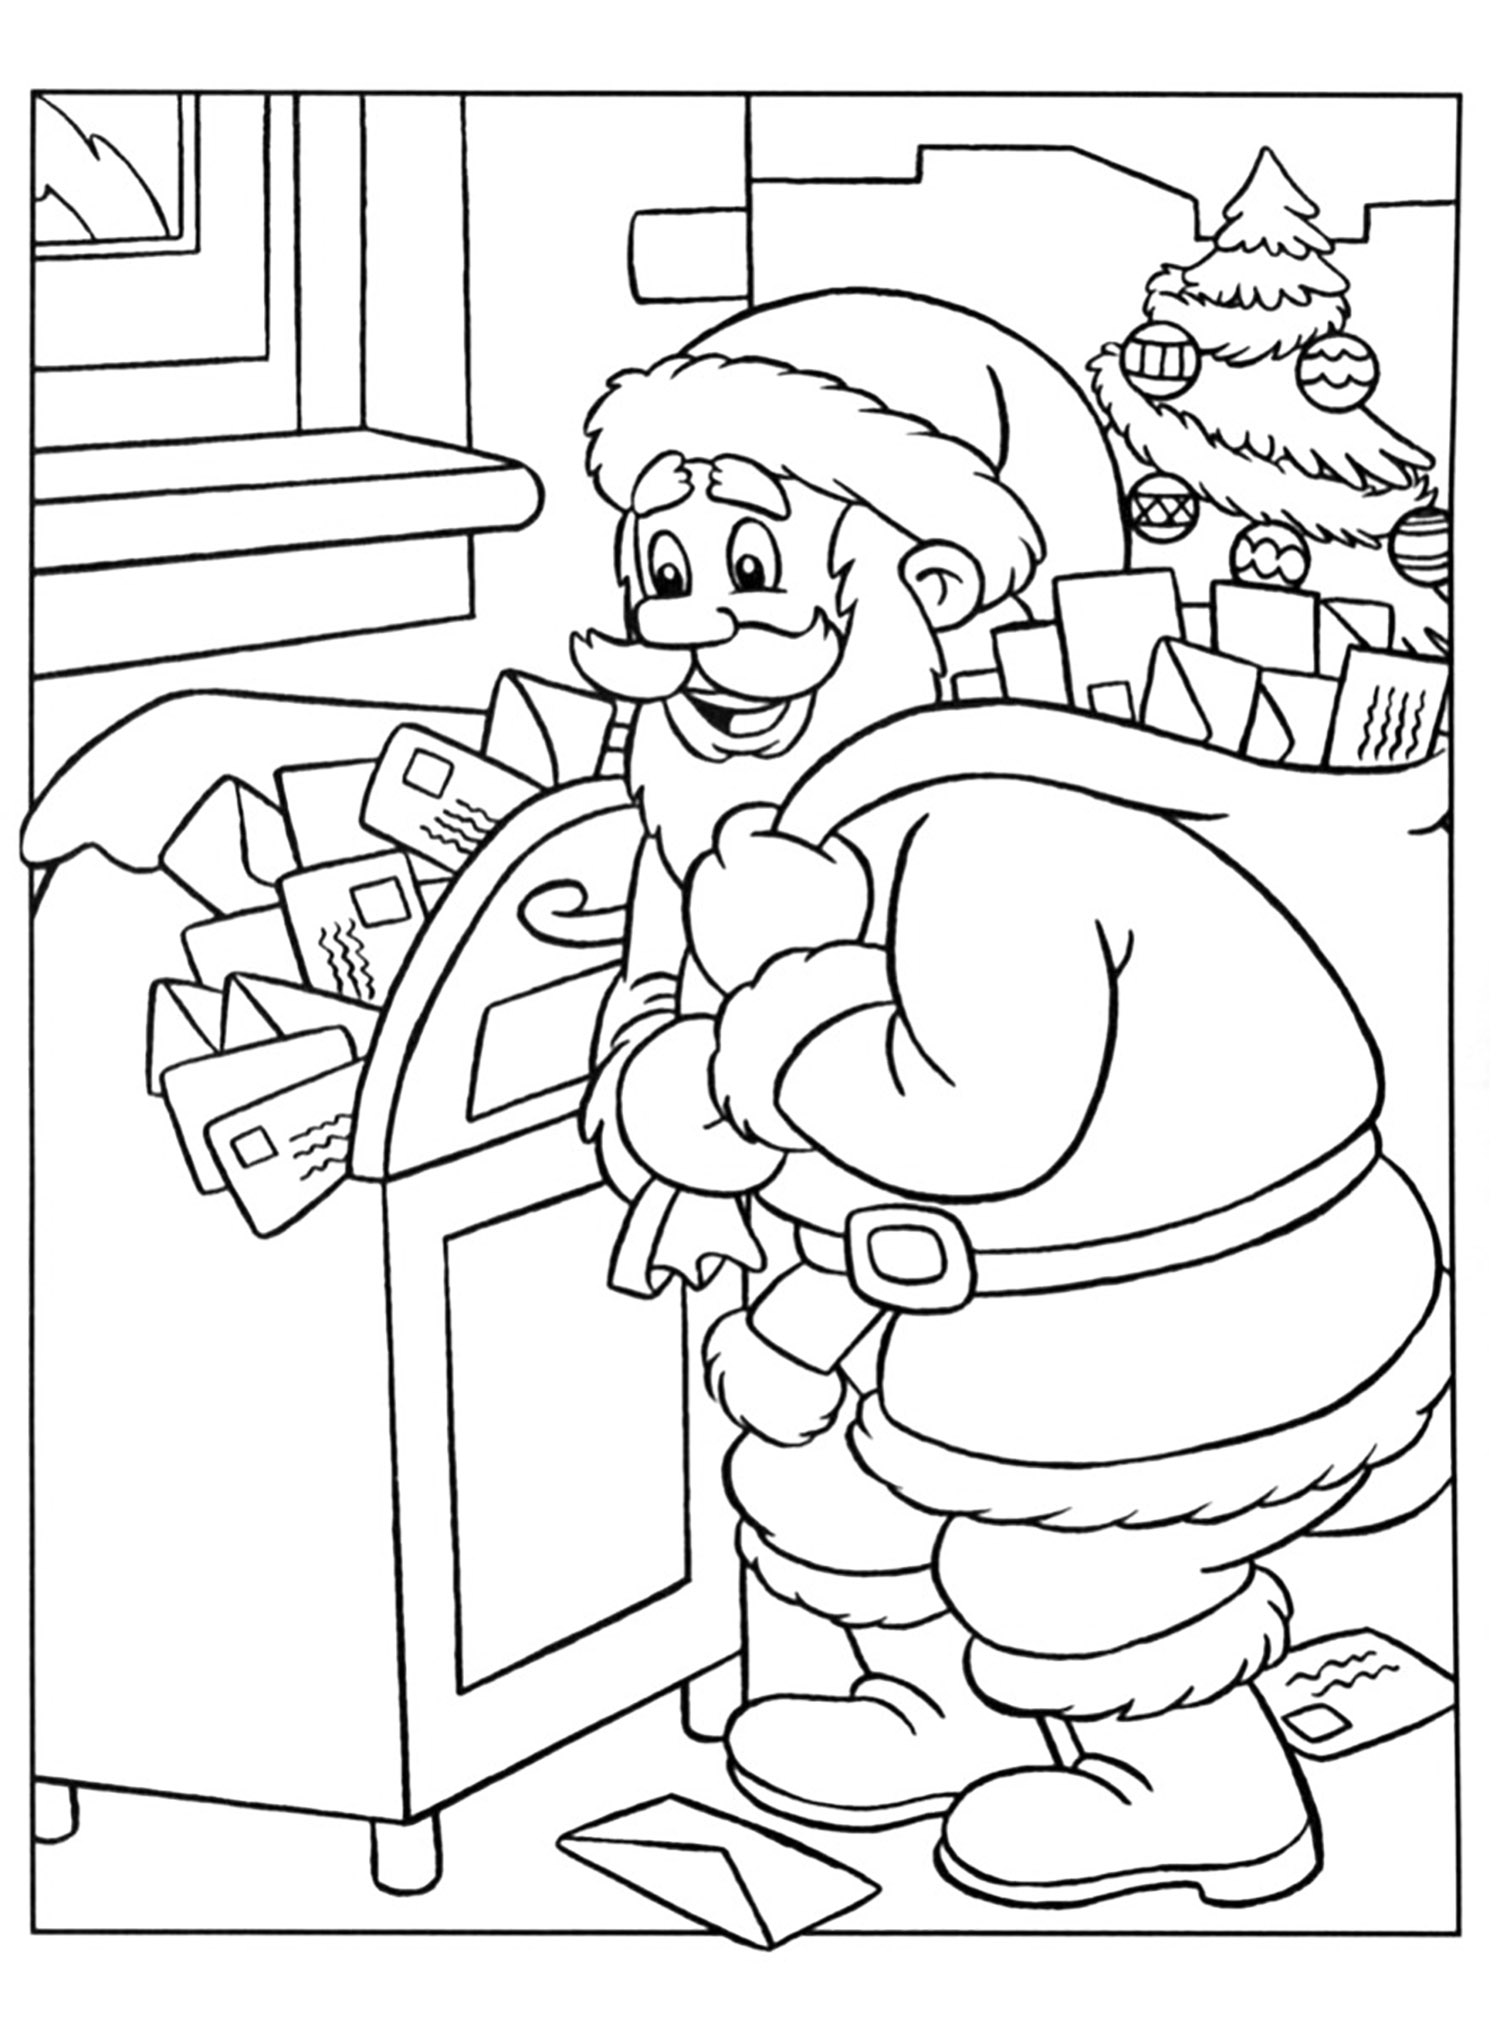 Santa claus and his letters - Christmas Coloring pages for ...